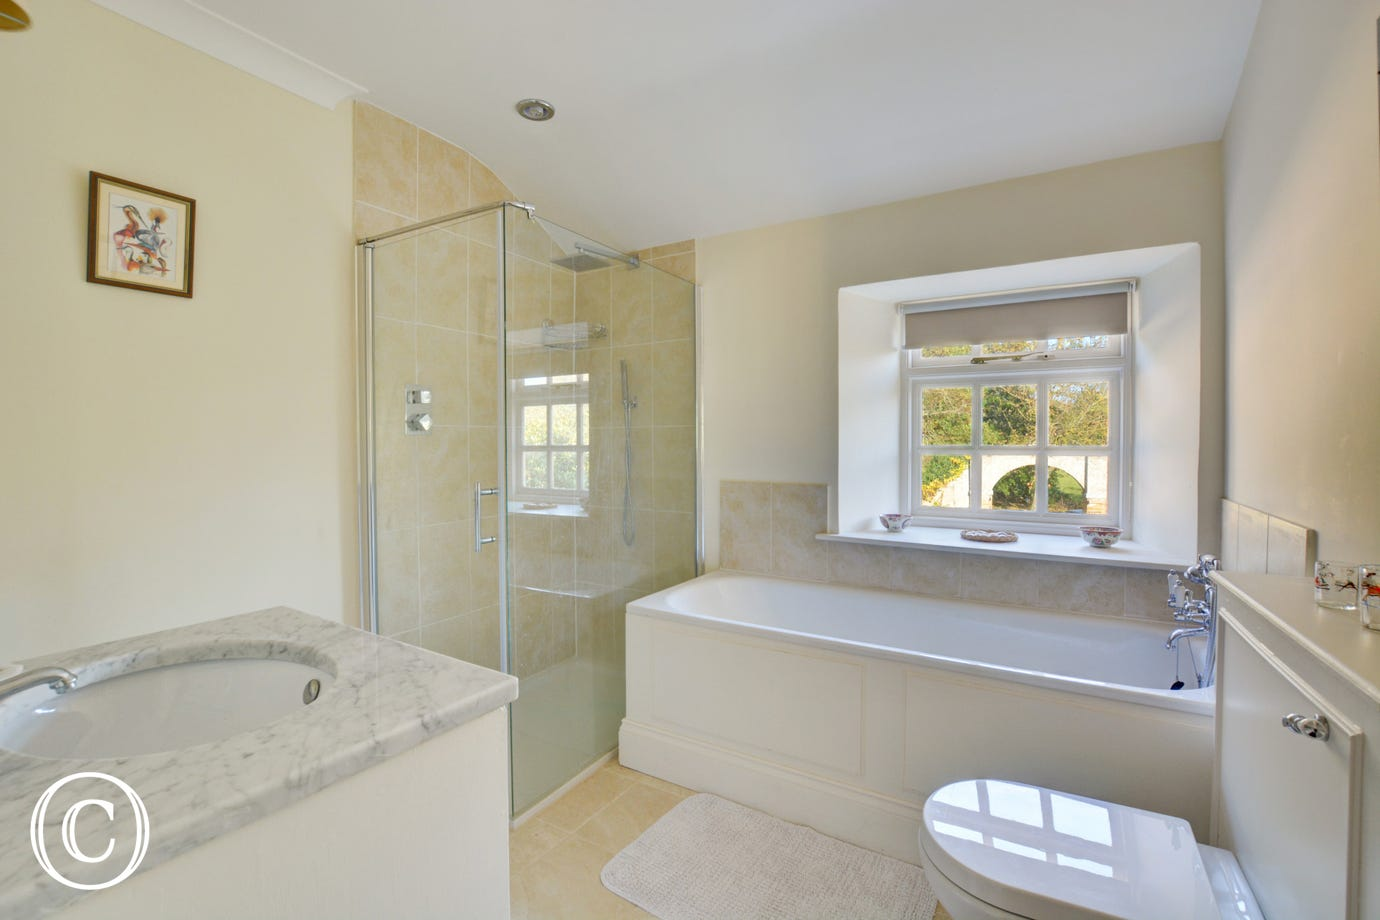 Bathroom with shower cubicle, wash basin and wc